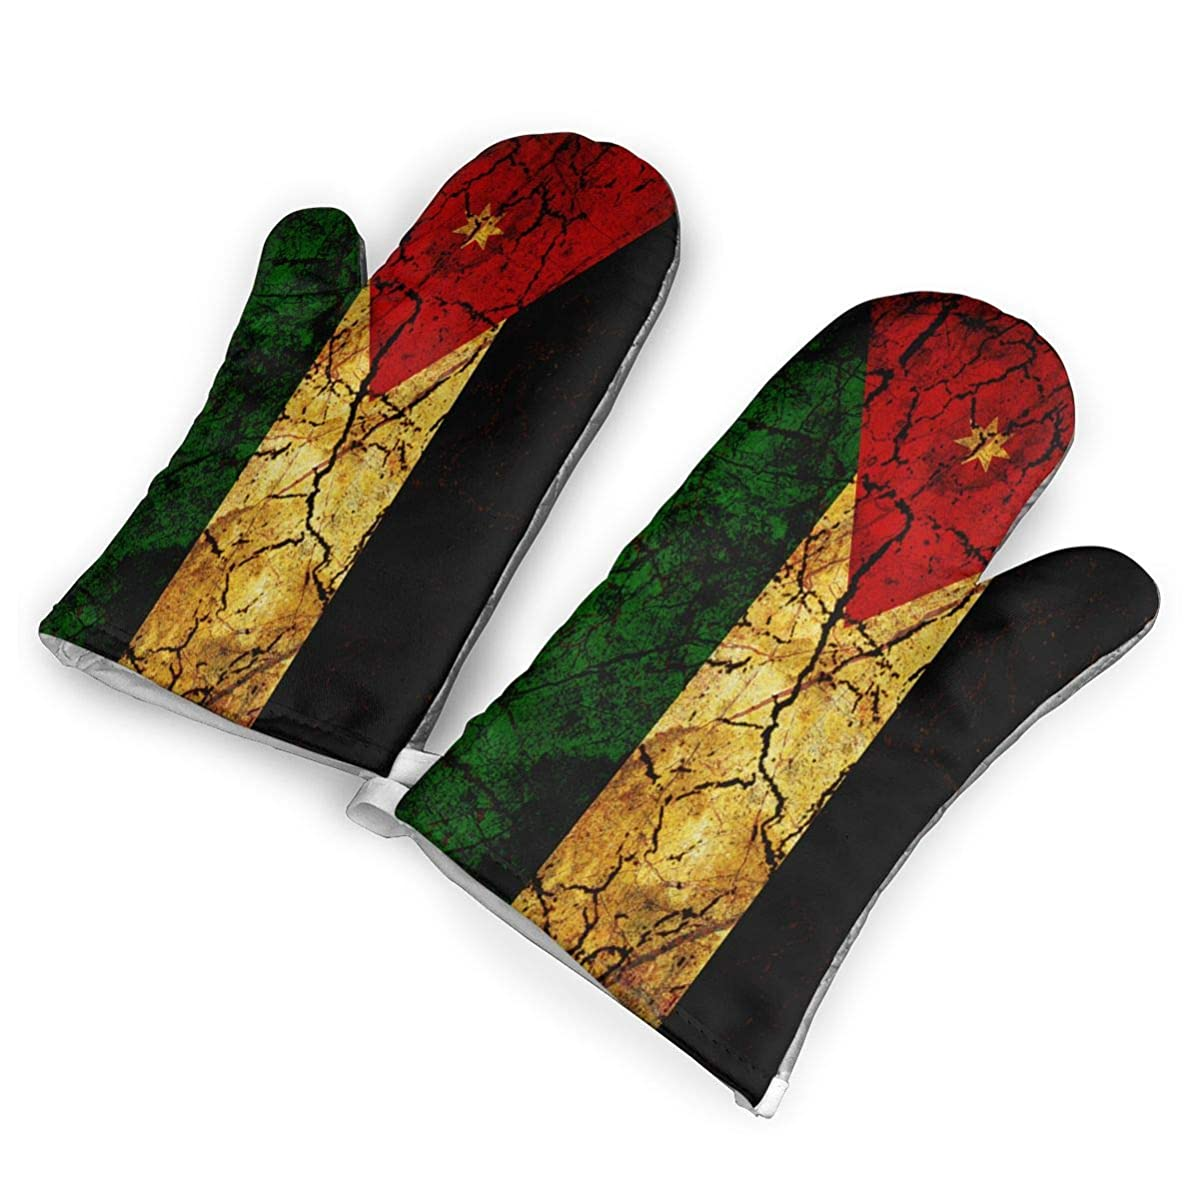 TRENDCAT Vintage Jordan Flag Oven Mitts/Gloves - Heat Resistant Handle Hot Oven/Cooking Items Safely - Soft Insulated Deep Pockets Pack of 2 Mitts